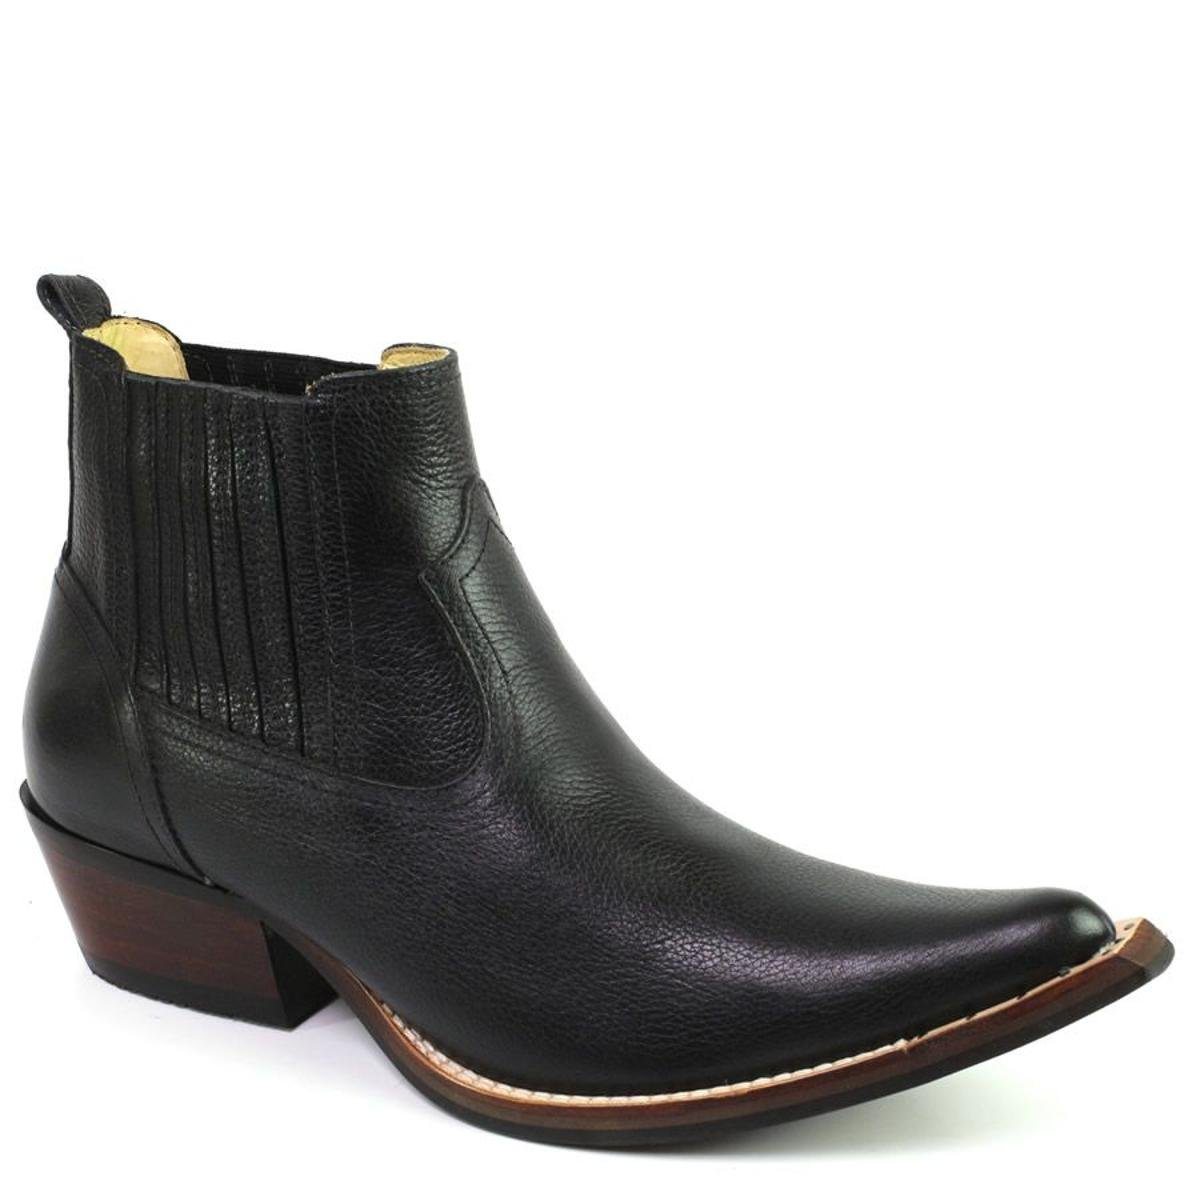 Preto Shoes Bota Franca Top Top Bota Country wYZxW6